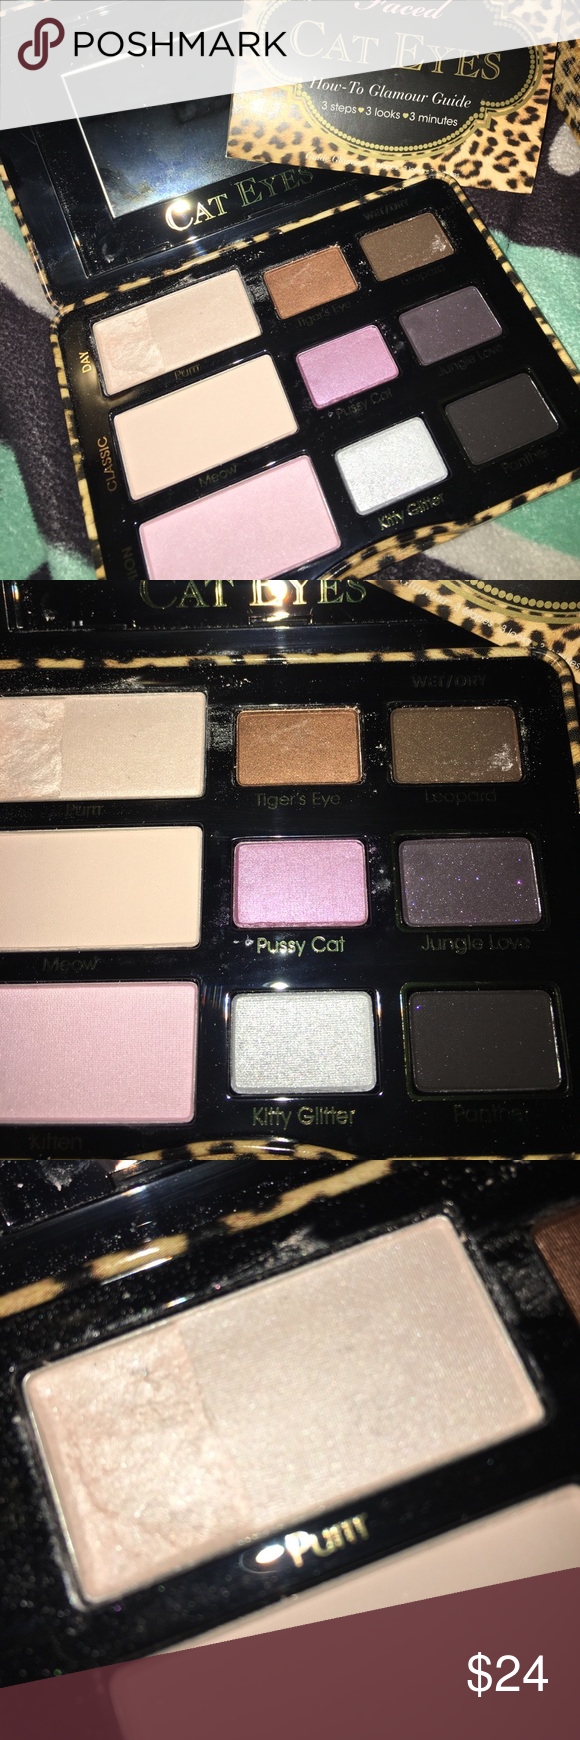 Too Faced 🖤Cat Eyes🖤Eyeshadow Palette Too faced makeup